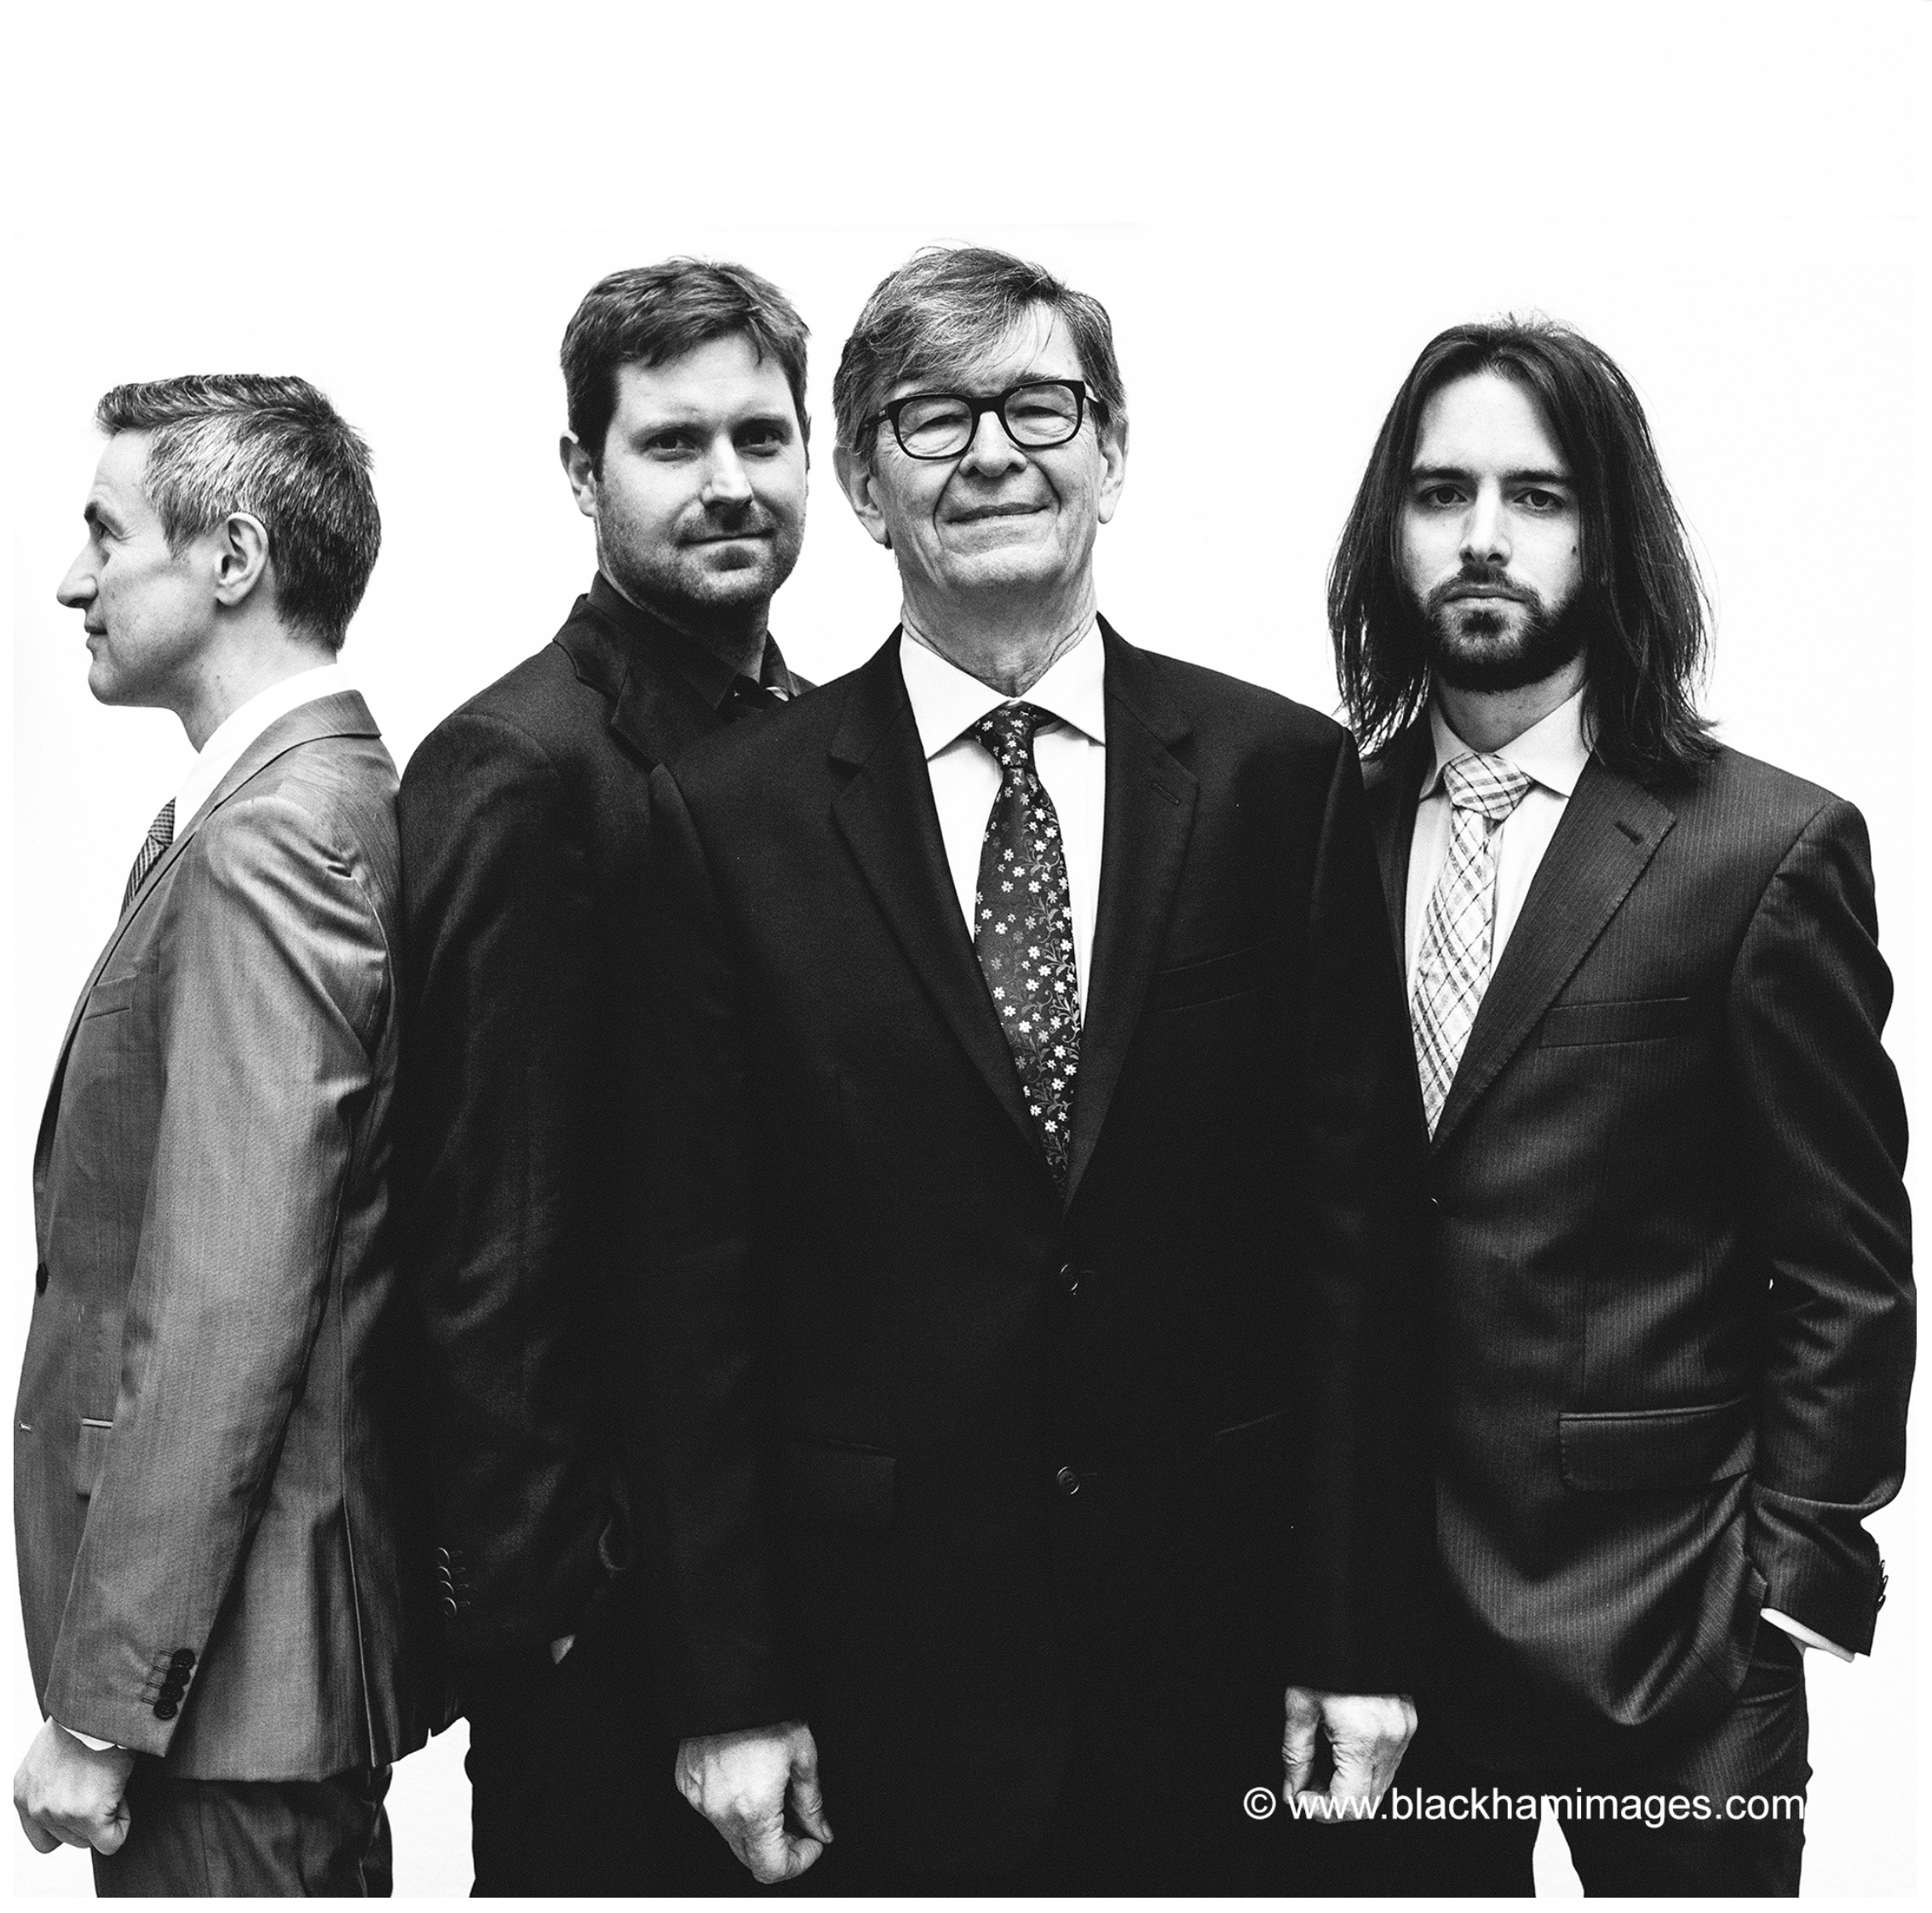 Left to Right: Dave O'Higgins, Wesley Gibbens, Darius Brubeck, Matt Ridley.